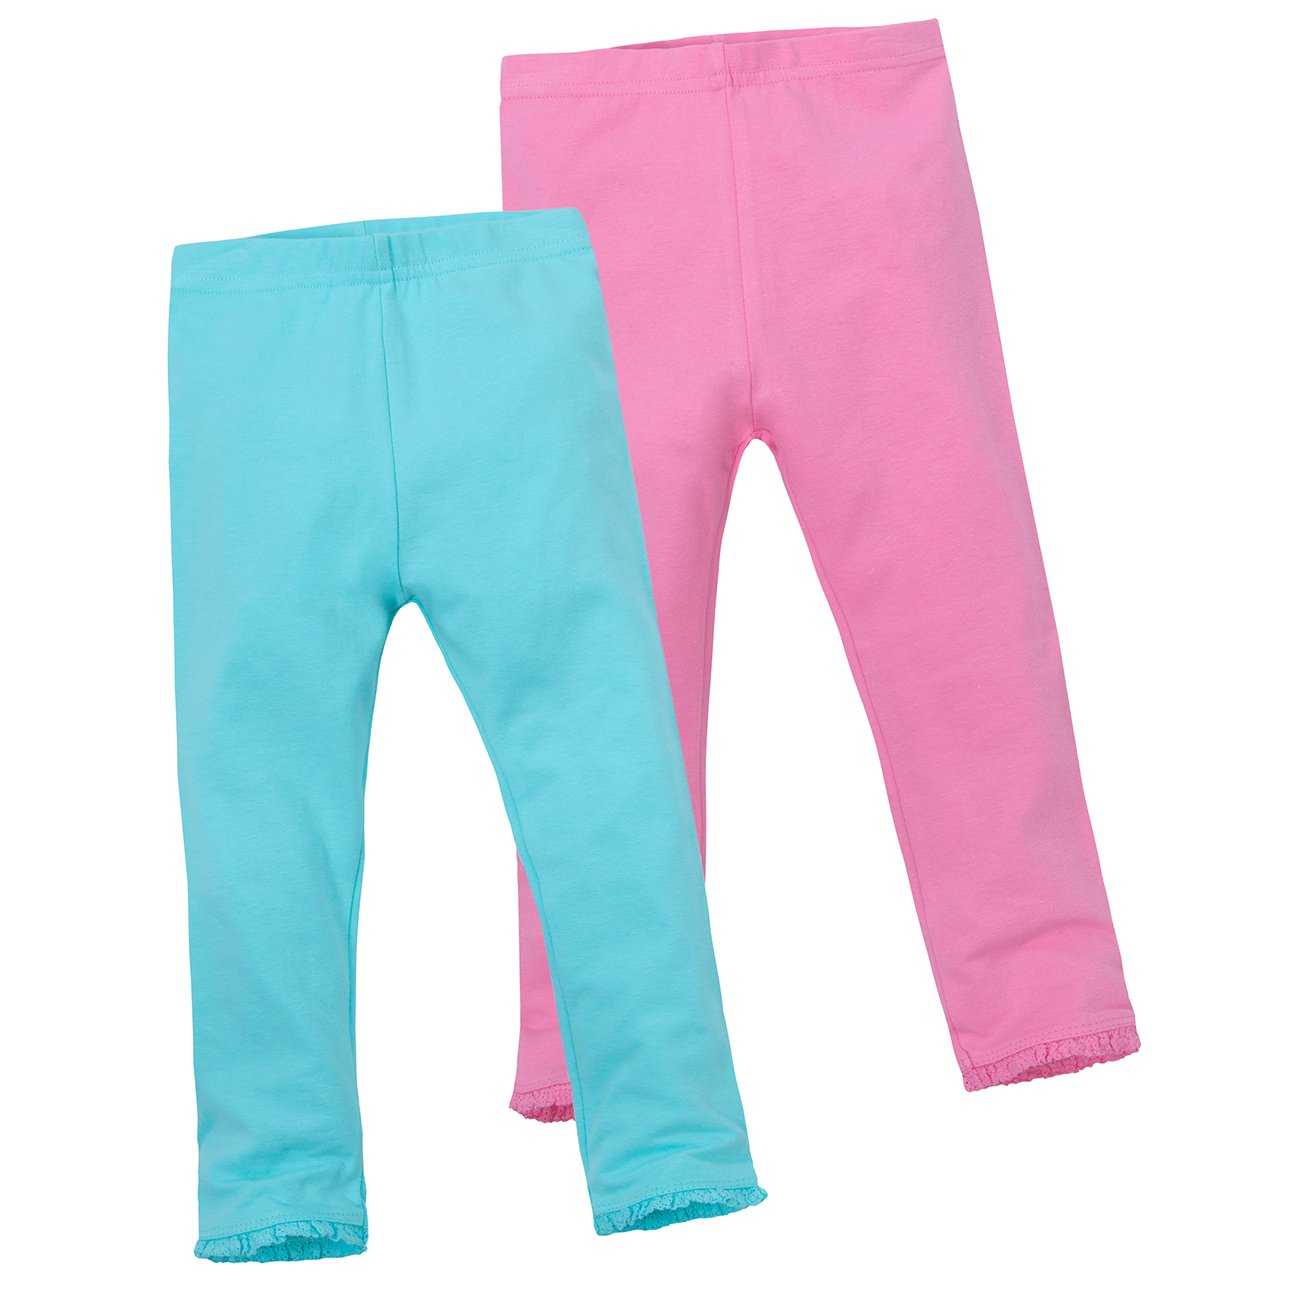 Minikidz Infant Girls 2-Pack Plain Cotton Blend Leggings with Lace Trim Detail